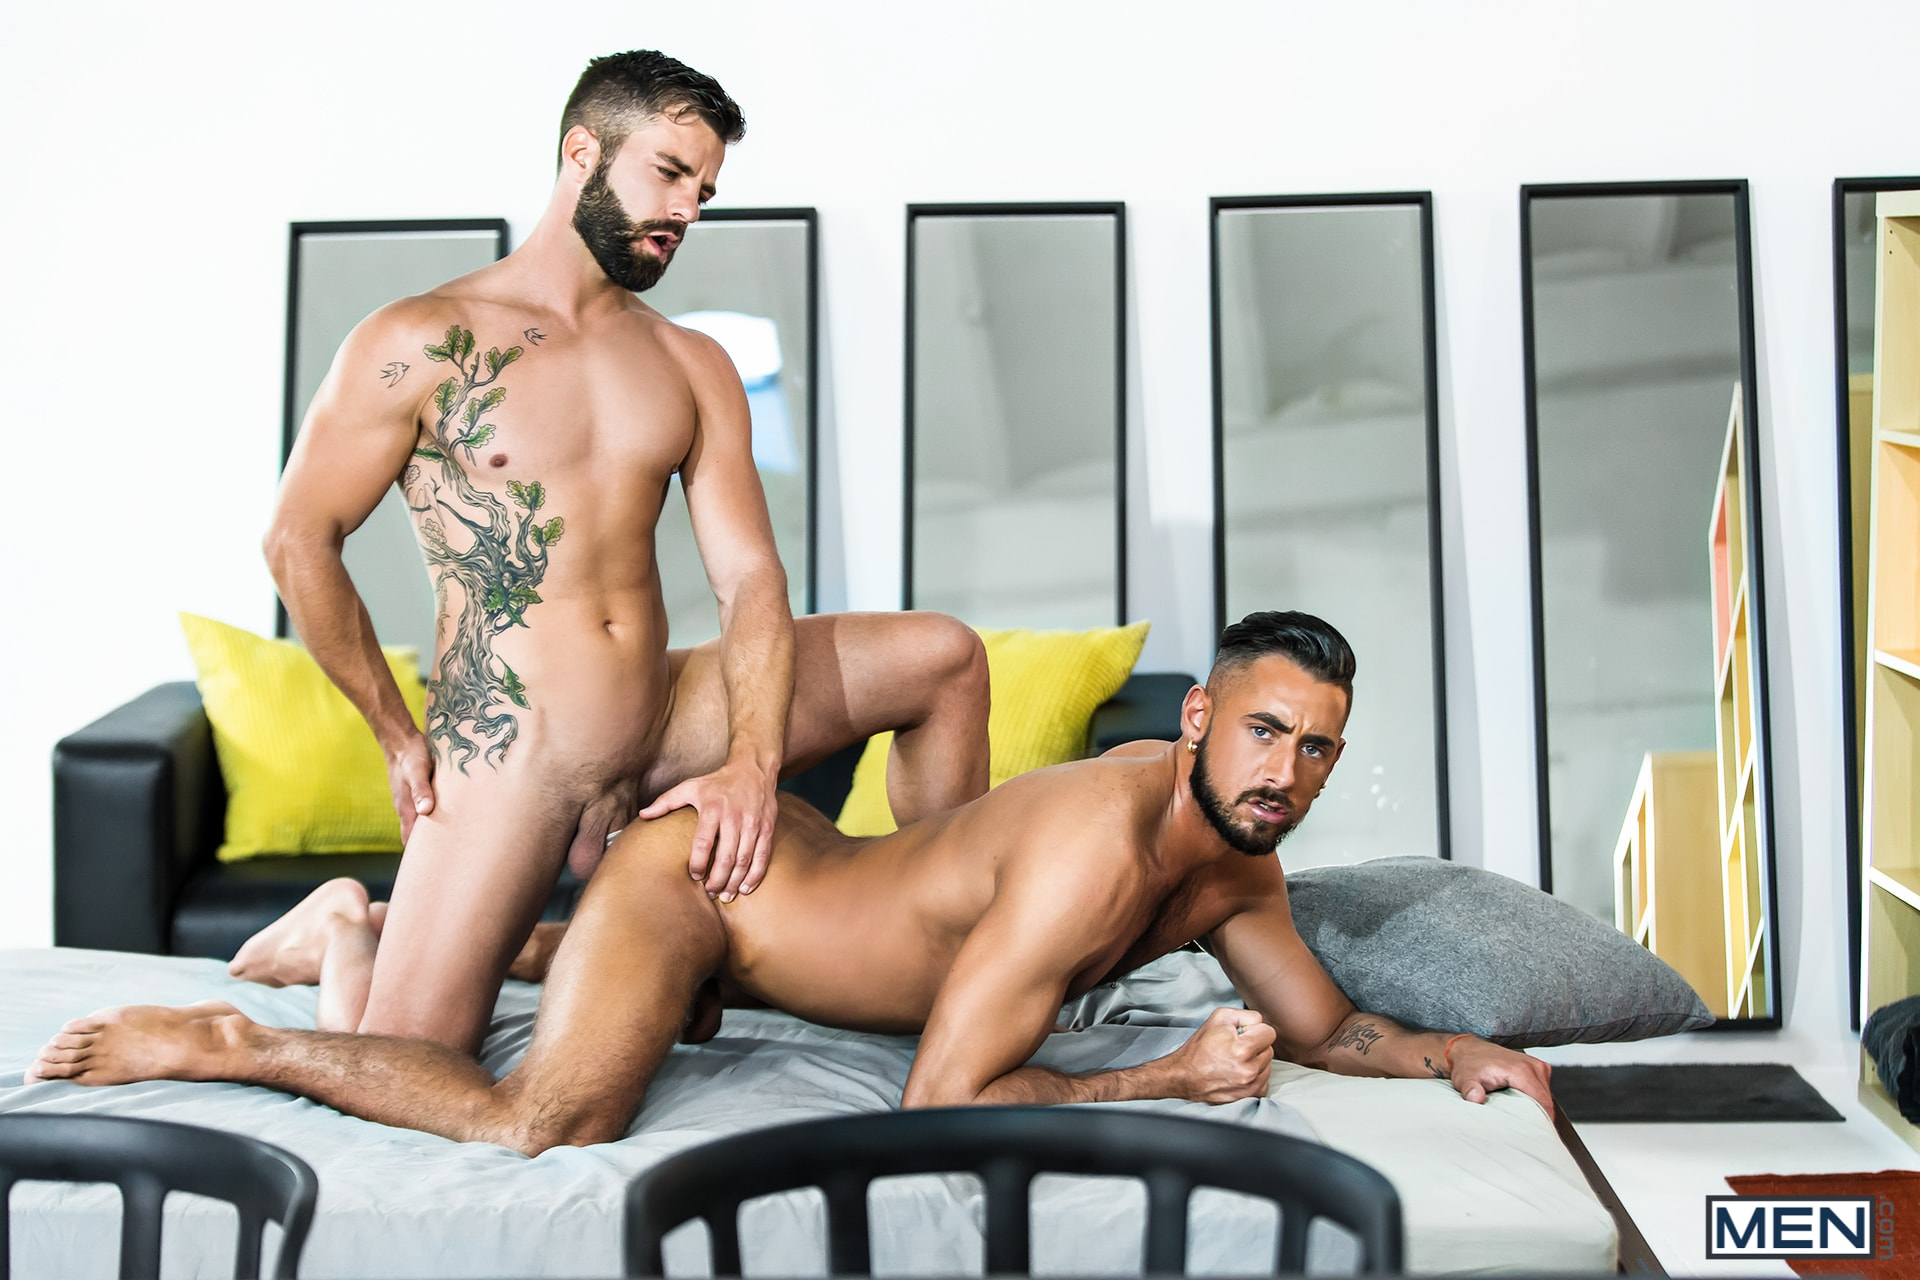 Playlists Containing Gay Dreaming - MEN.COM